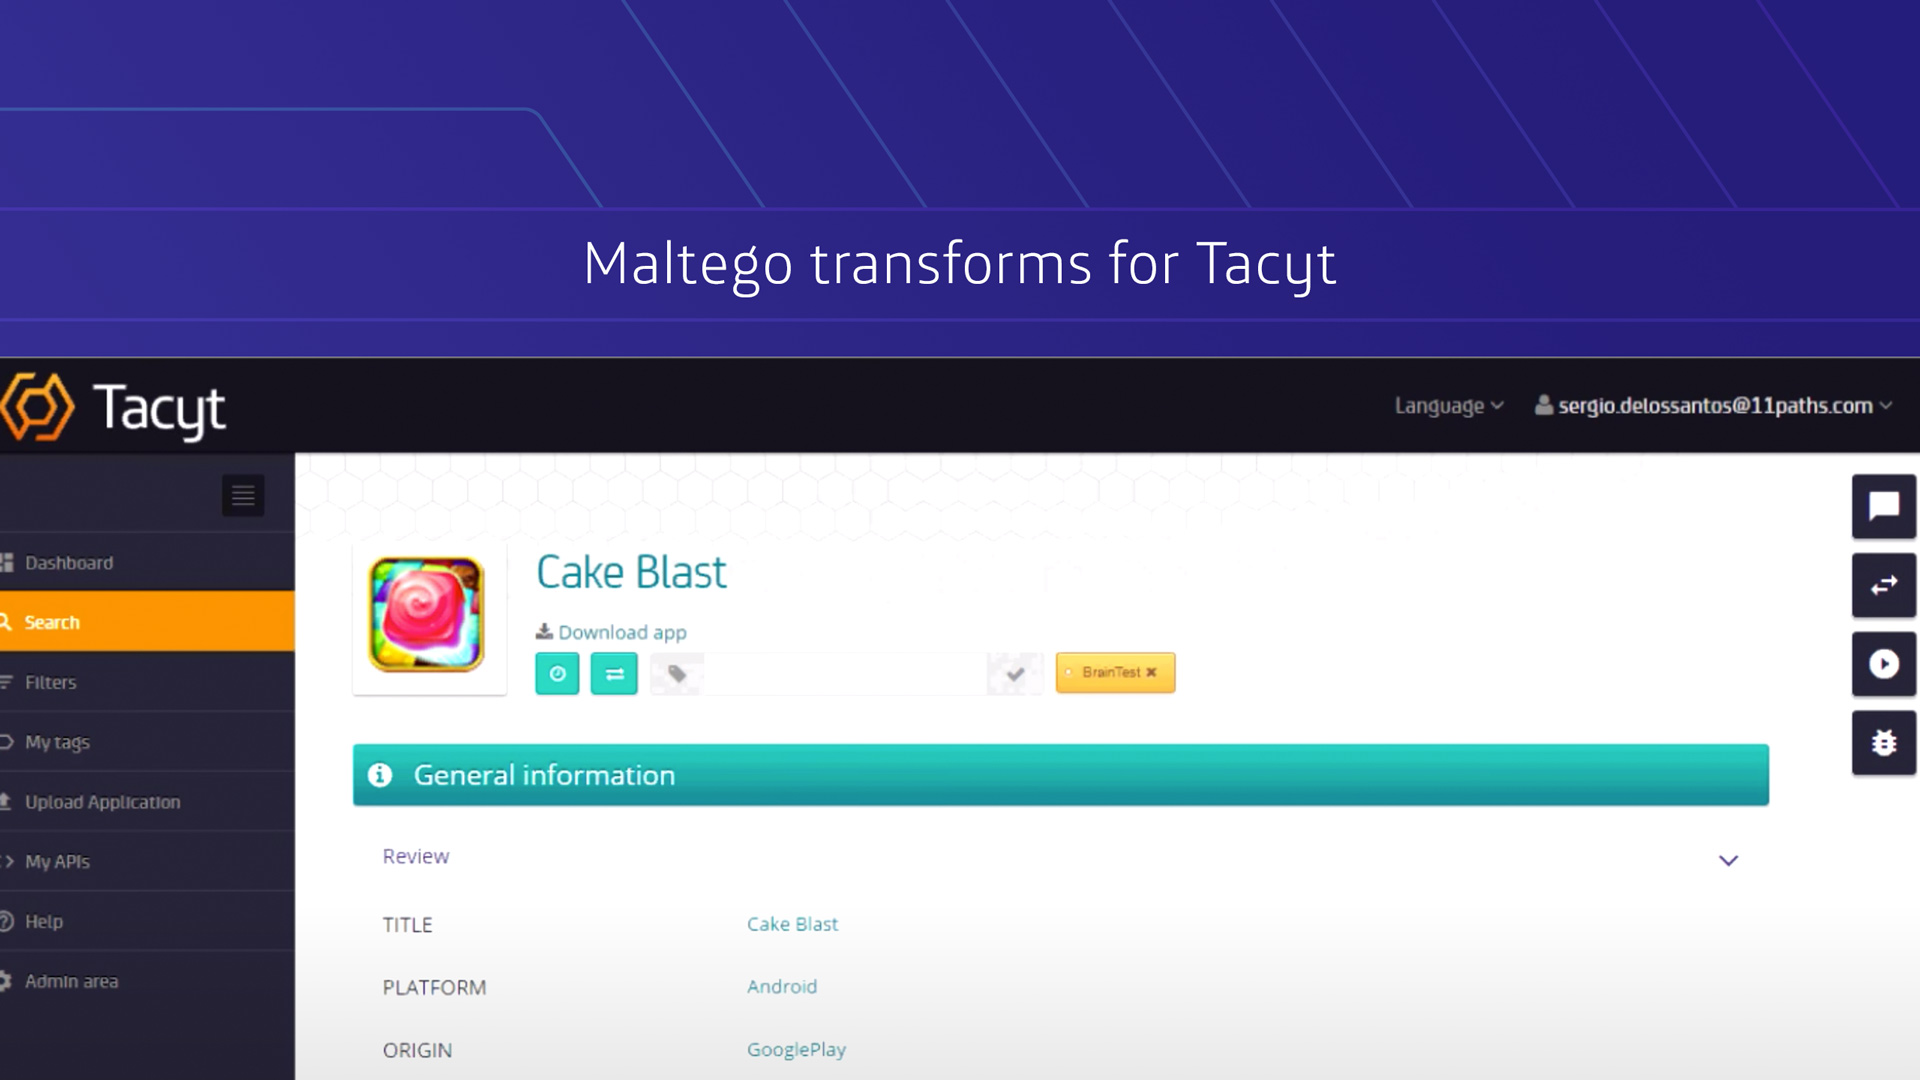 Maltego Transforms for Tacyt video